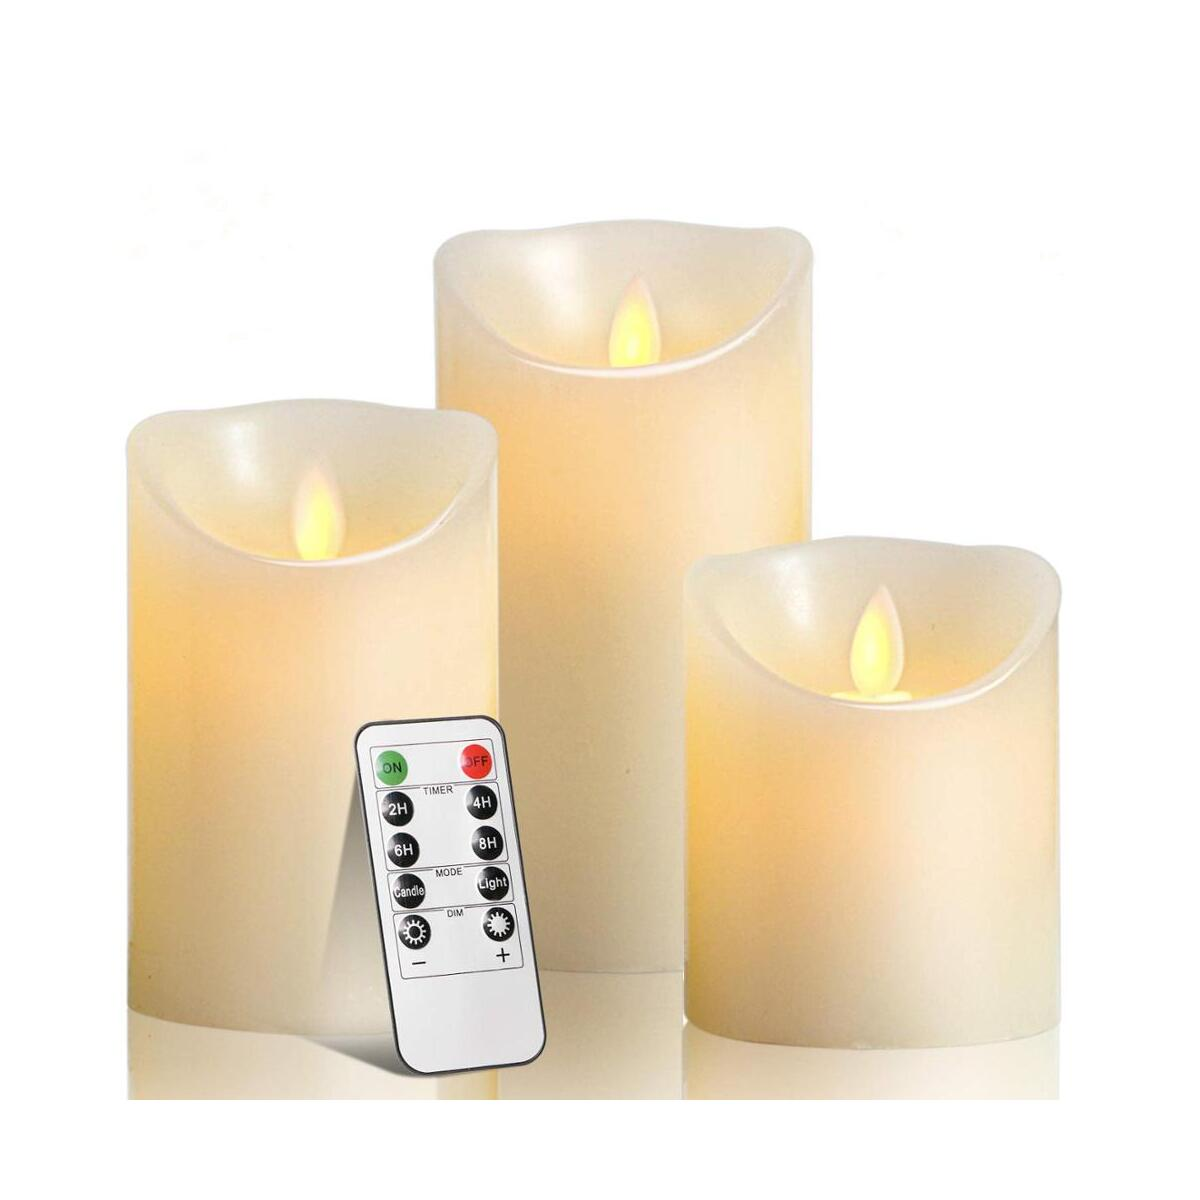 Wichmann | Flameless Candles for Garden Home Decor Party Wedding Decoration | Unscented LED Tealight Real Wax Candles, 3 Watts